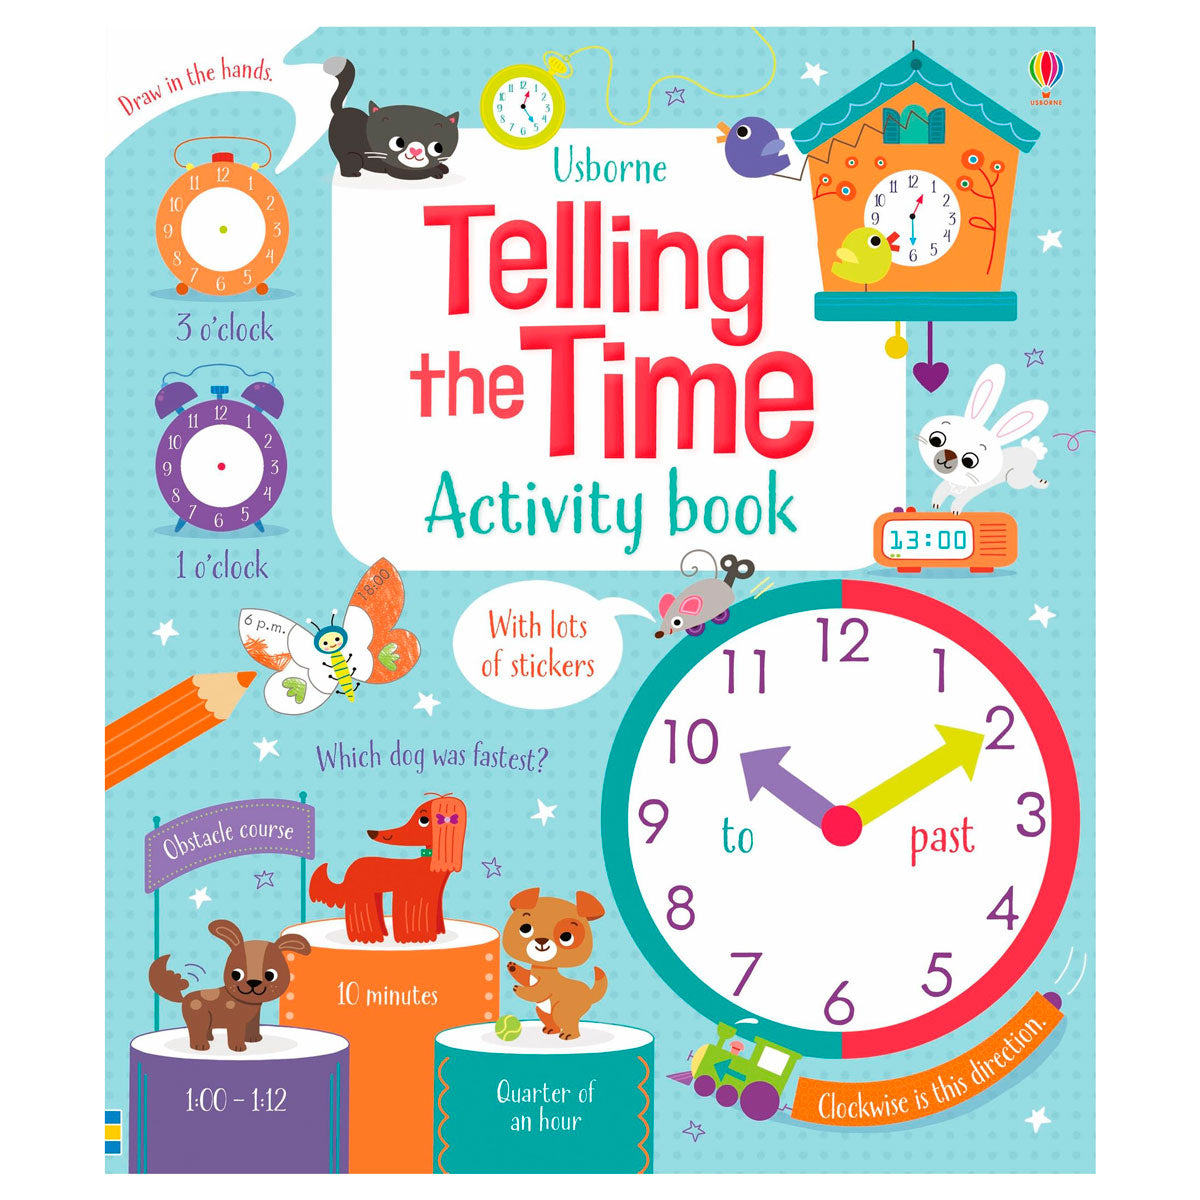 Usbourne Telling the Time Activity Book